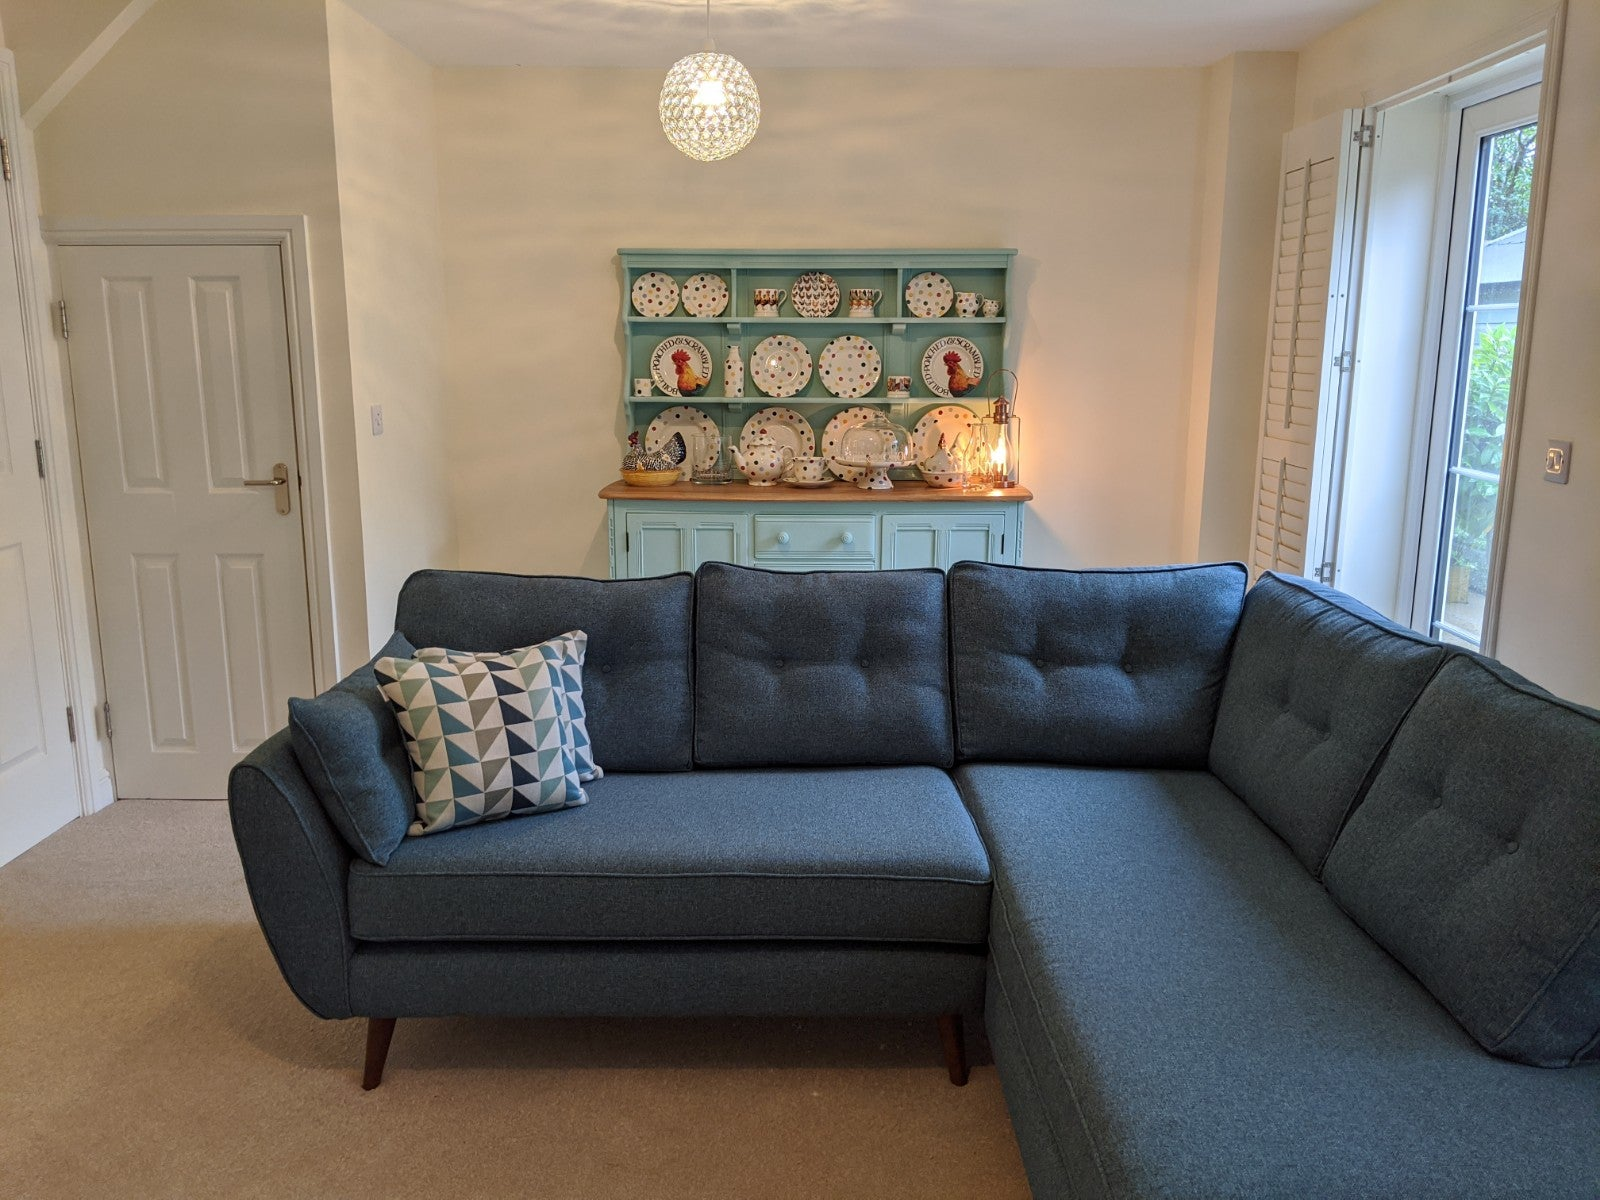 1 Coneygar Fields, Steeple Aston - Living room 2